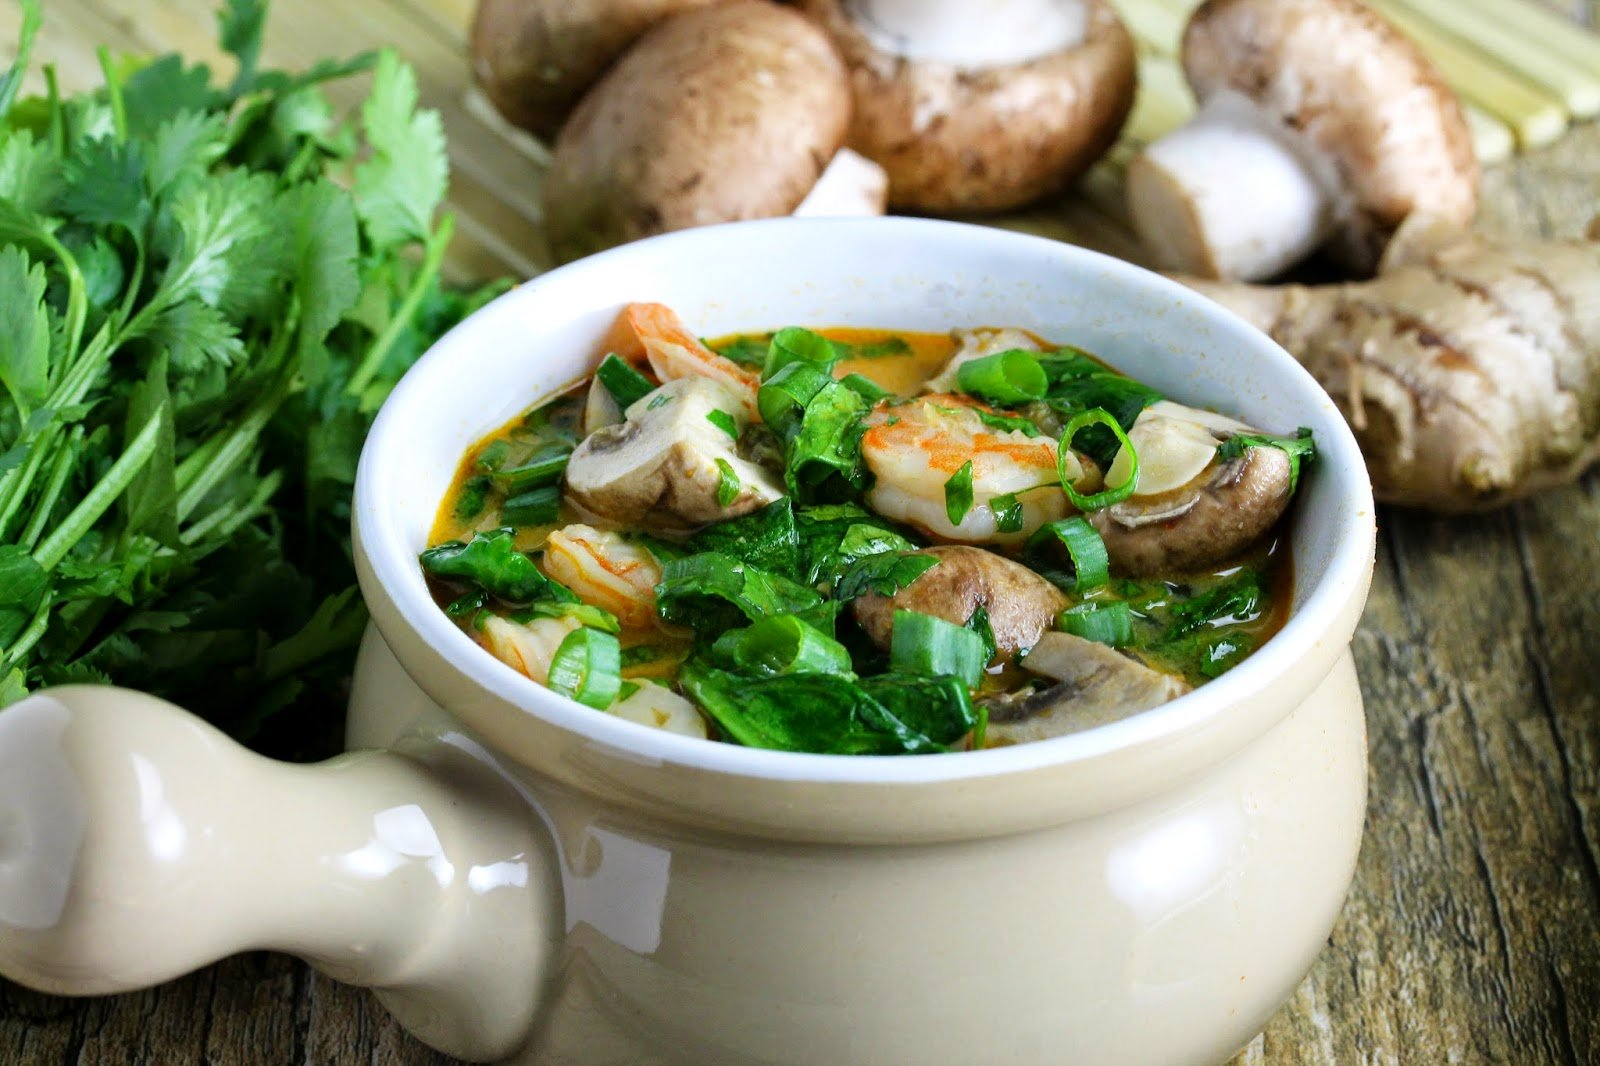 This soup is made from all fresh ingredients: A bowl of Thai Style Shrimp and Noodle Curry Soup surrounded by a bunch of fresh cilantro, crimini mushrooms and ginger